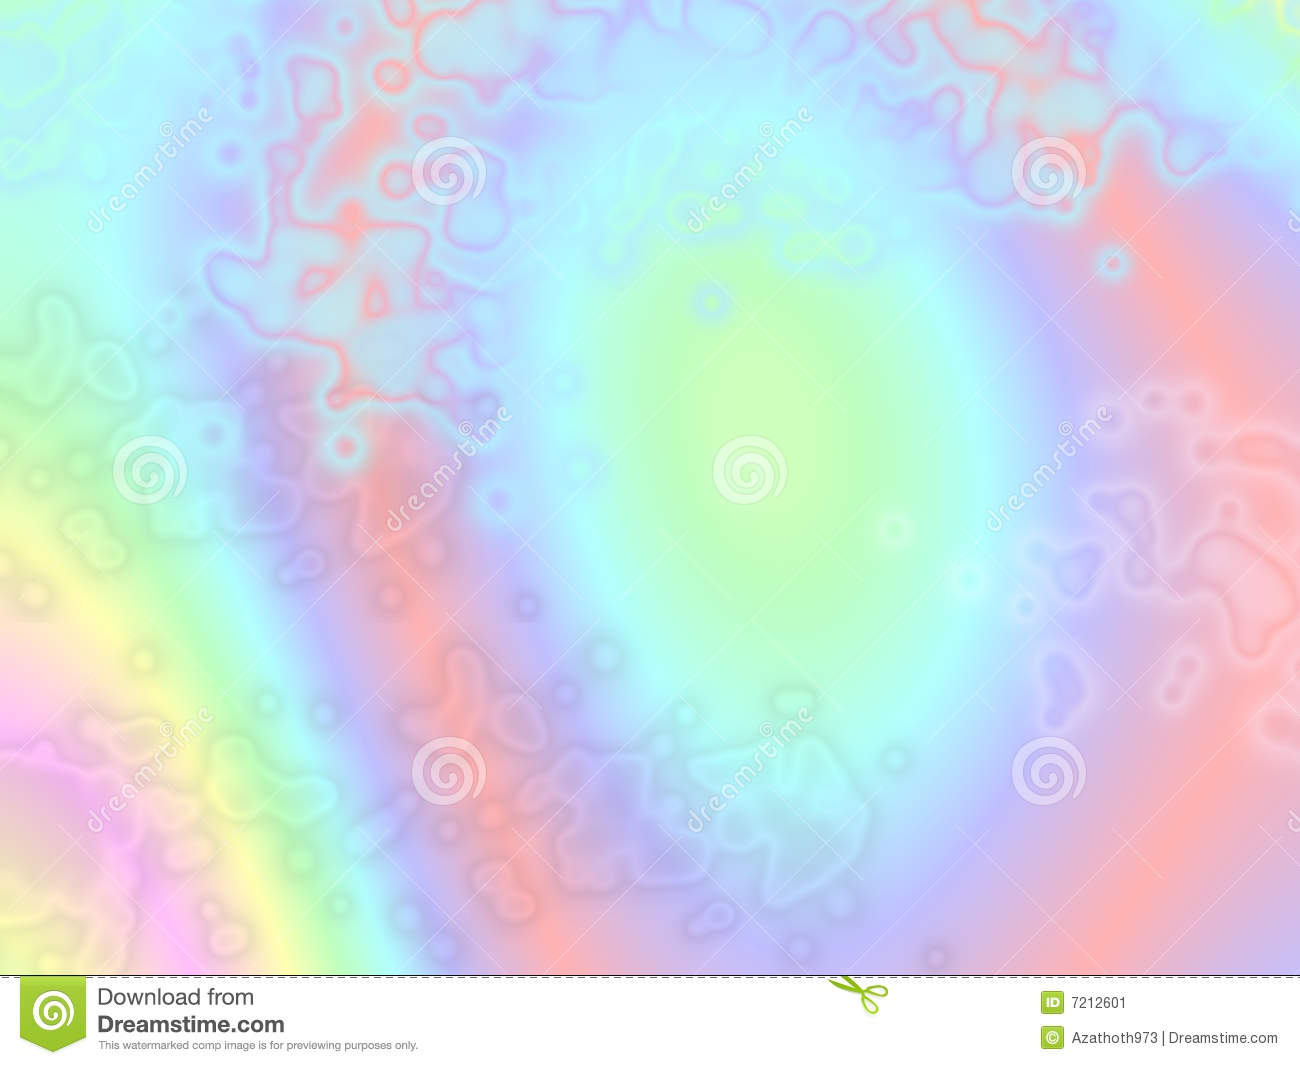 Psychedelic Pastel Ethereal Background Stock Image - Image: 7212601